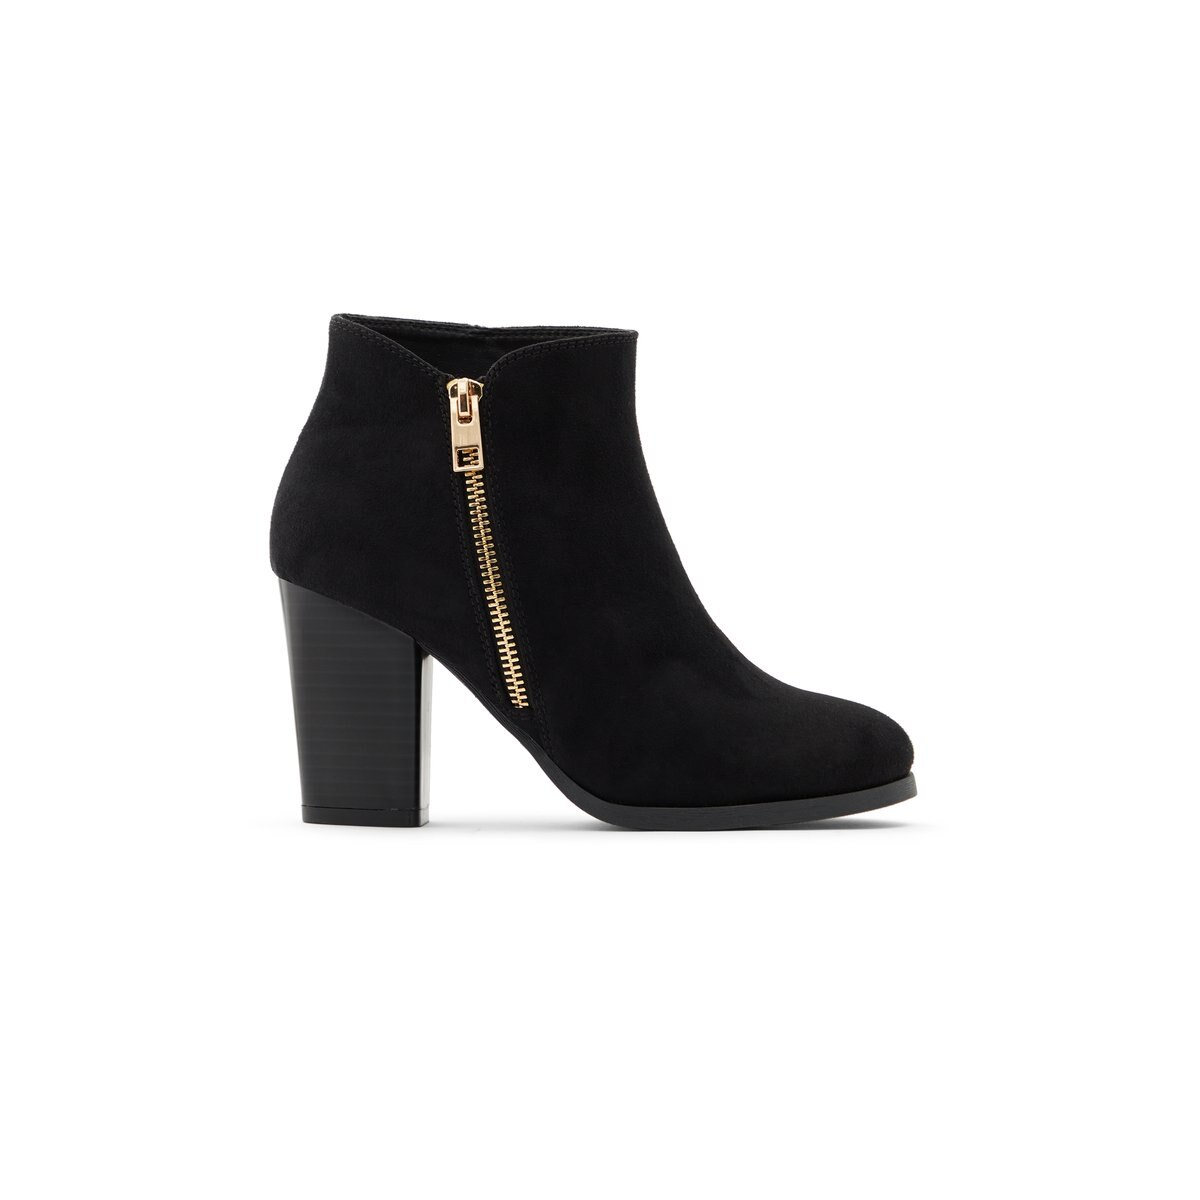 Larra Black Women's Ankle Boots | Call